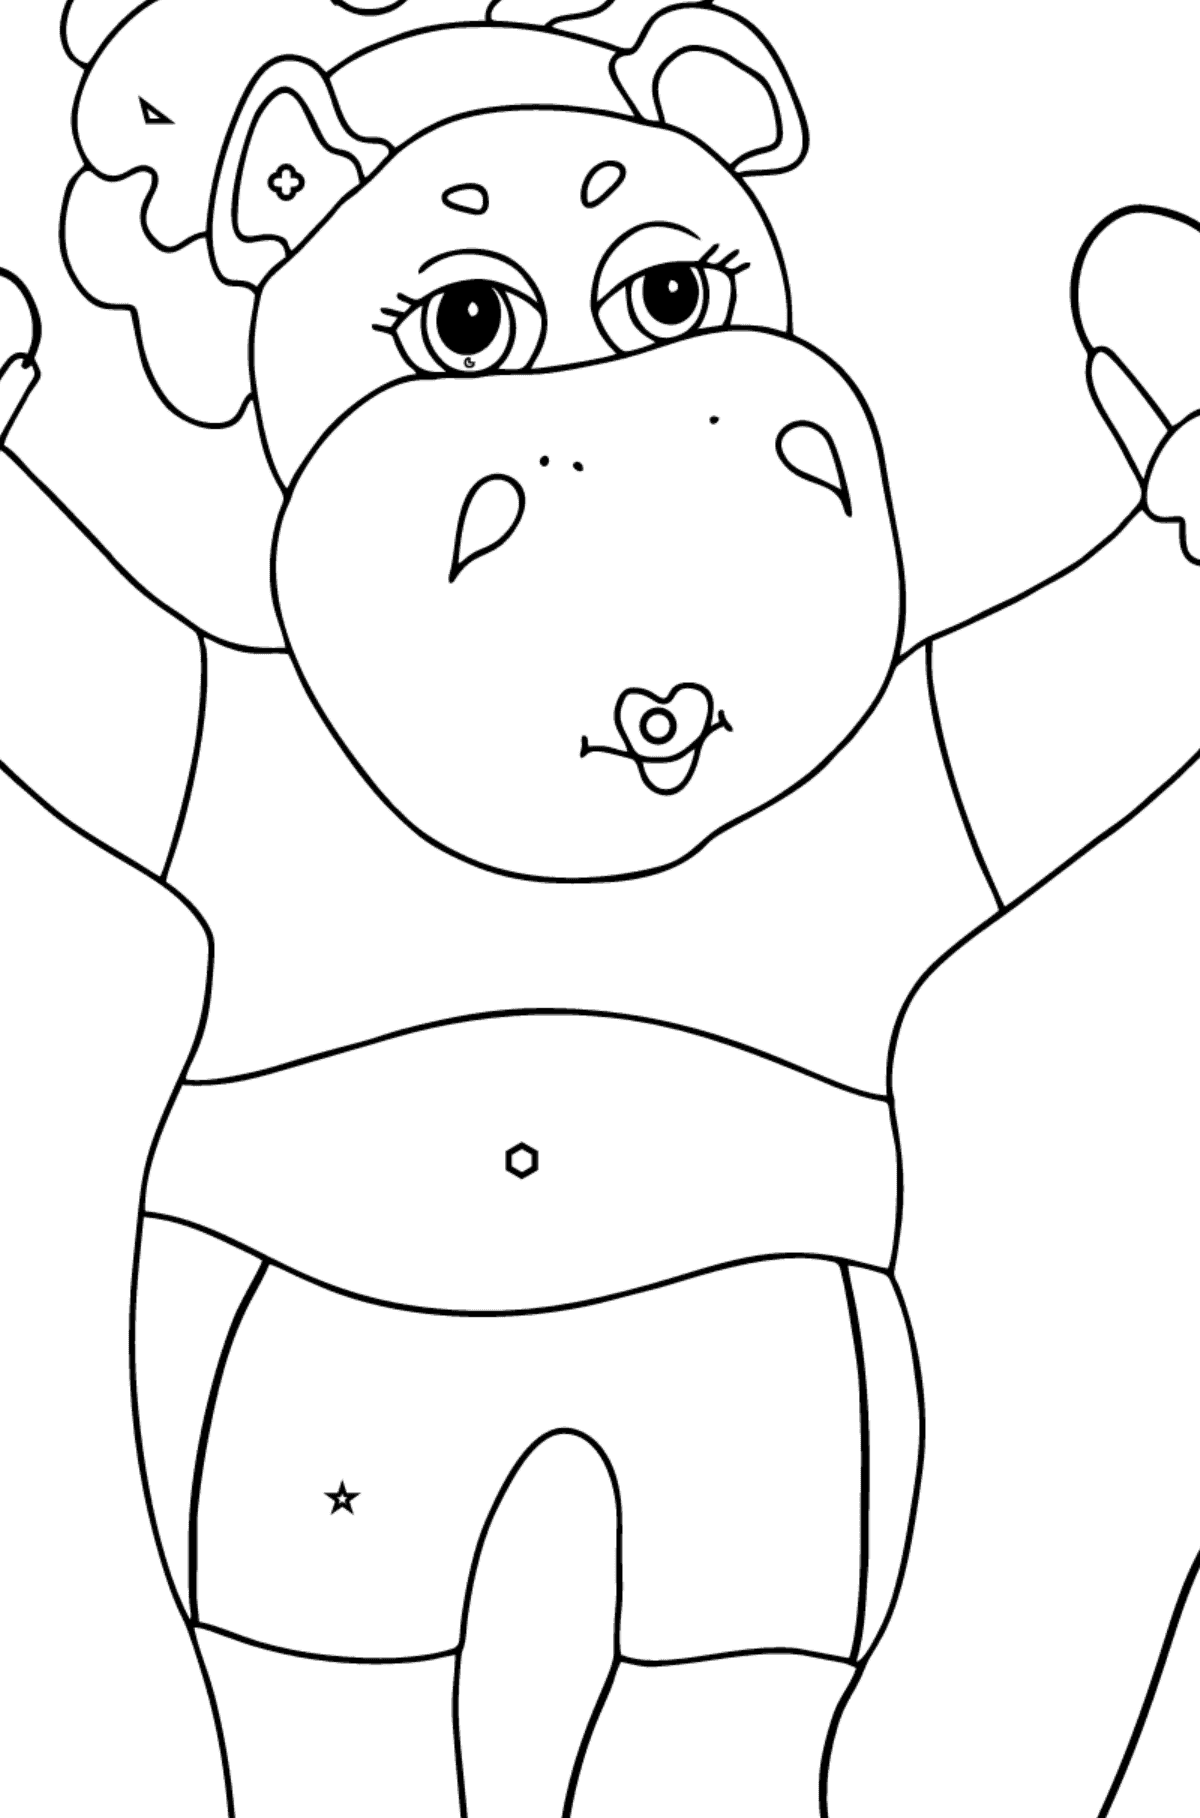 Coloring Page - A Hippo with a Jump Rope for Children  - Color by Geometric Shapes